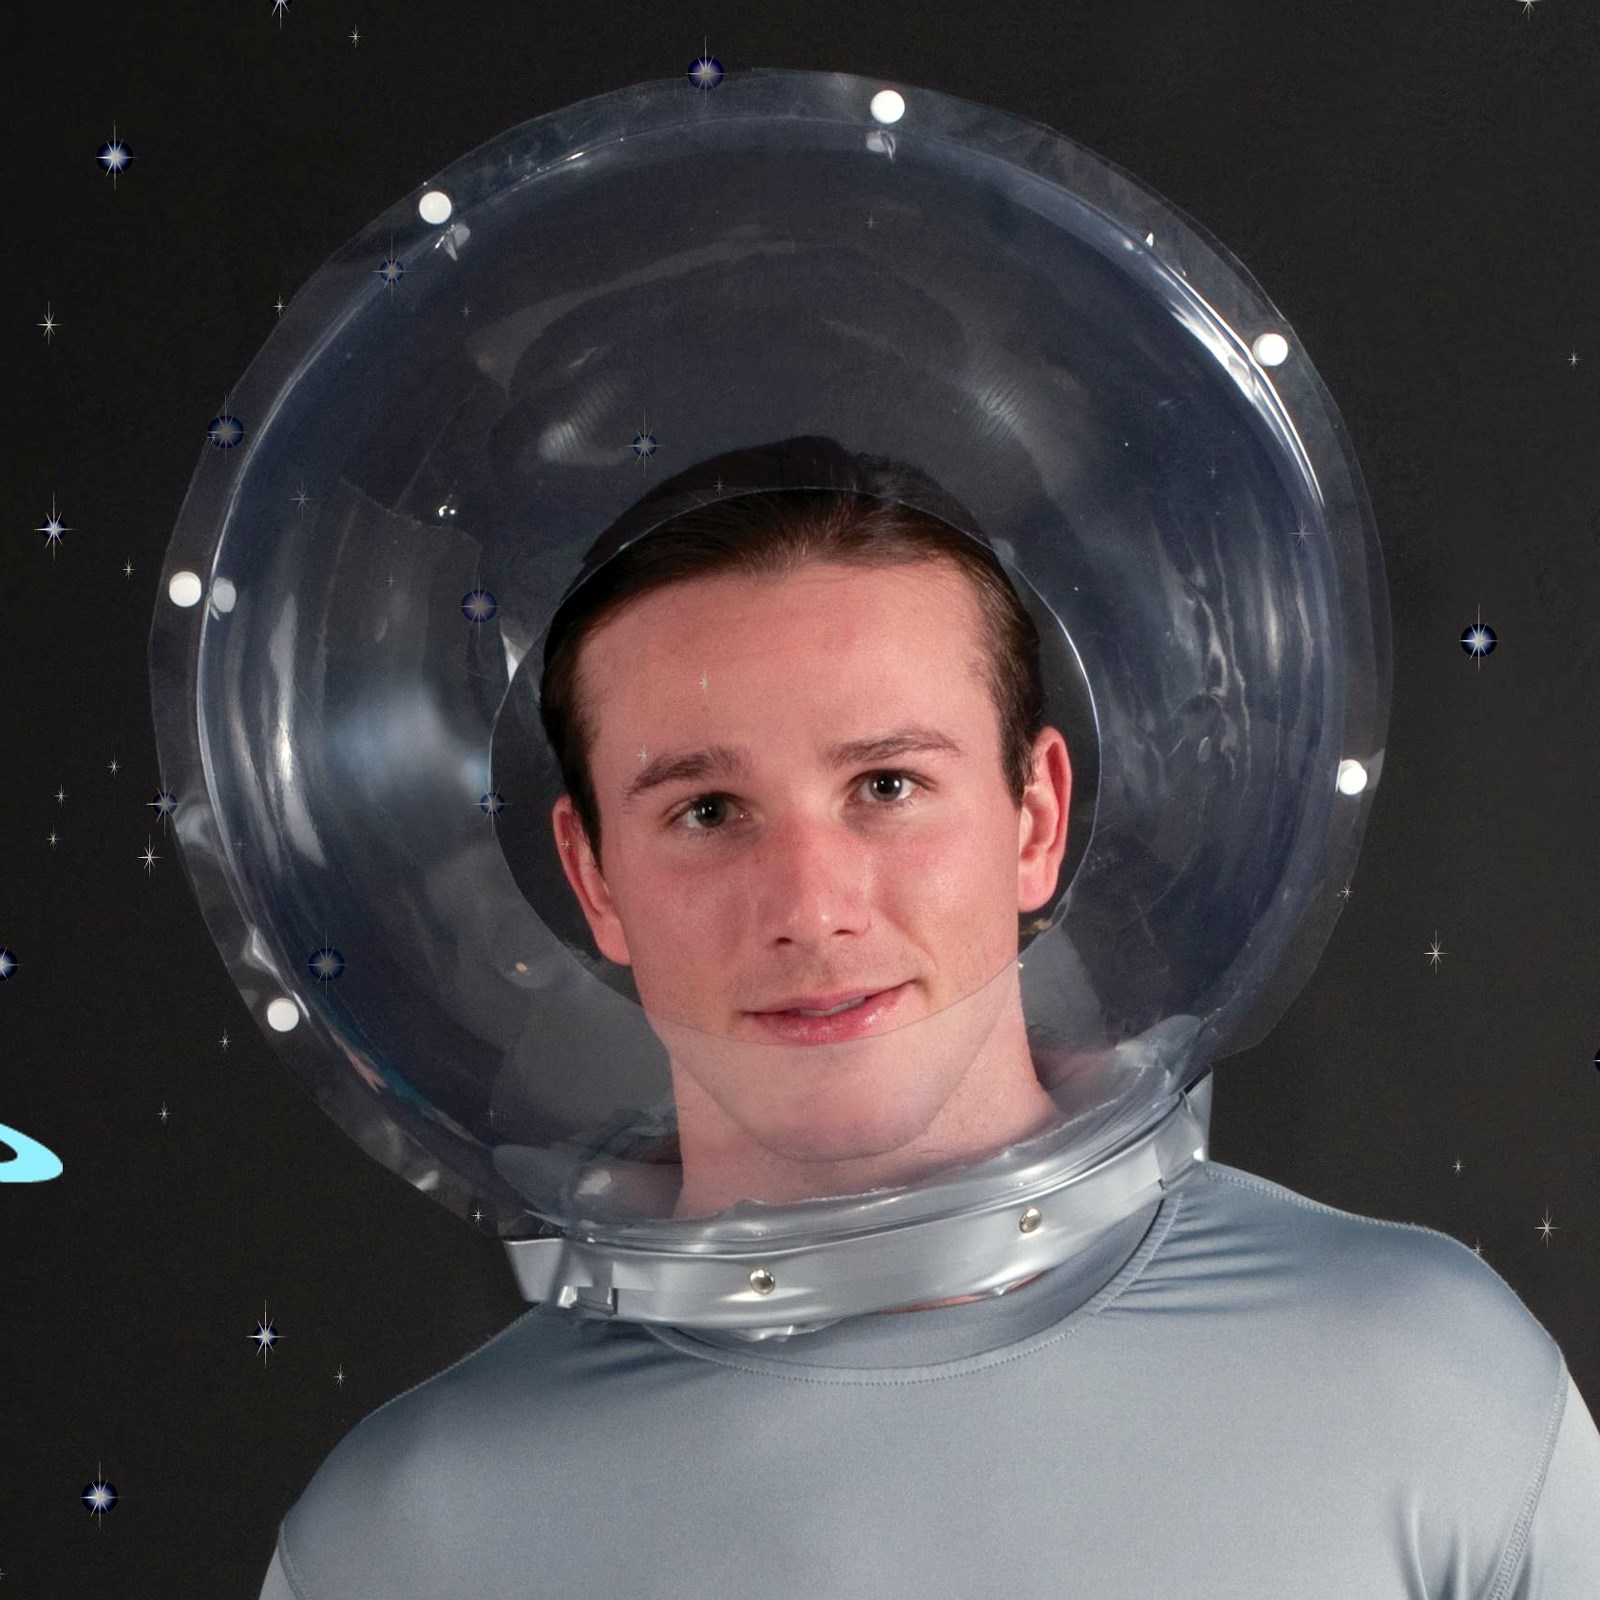 Space Helmet (Adult) One-Size